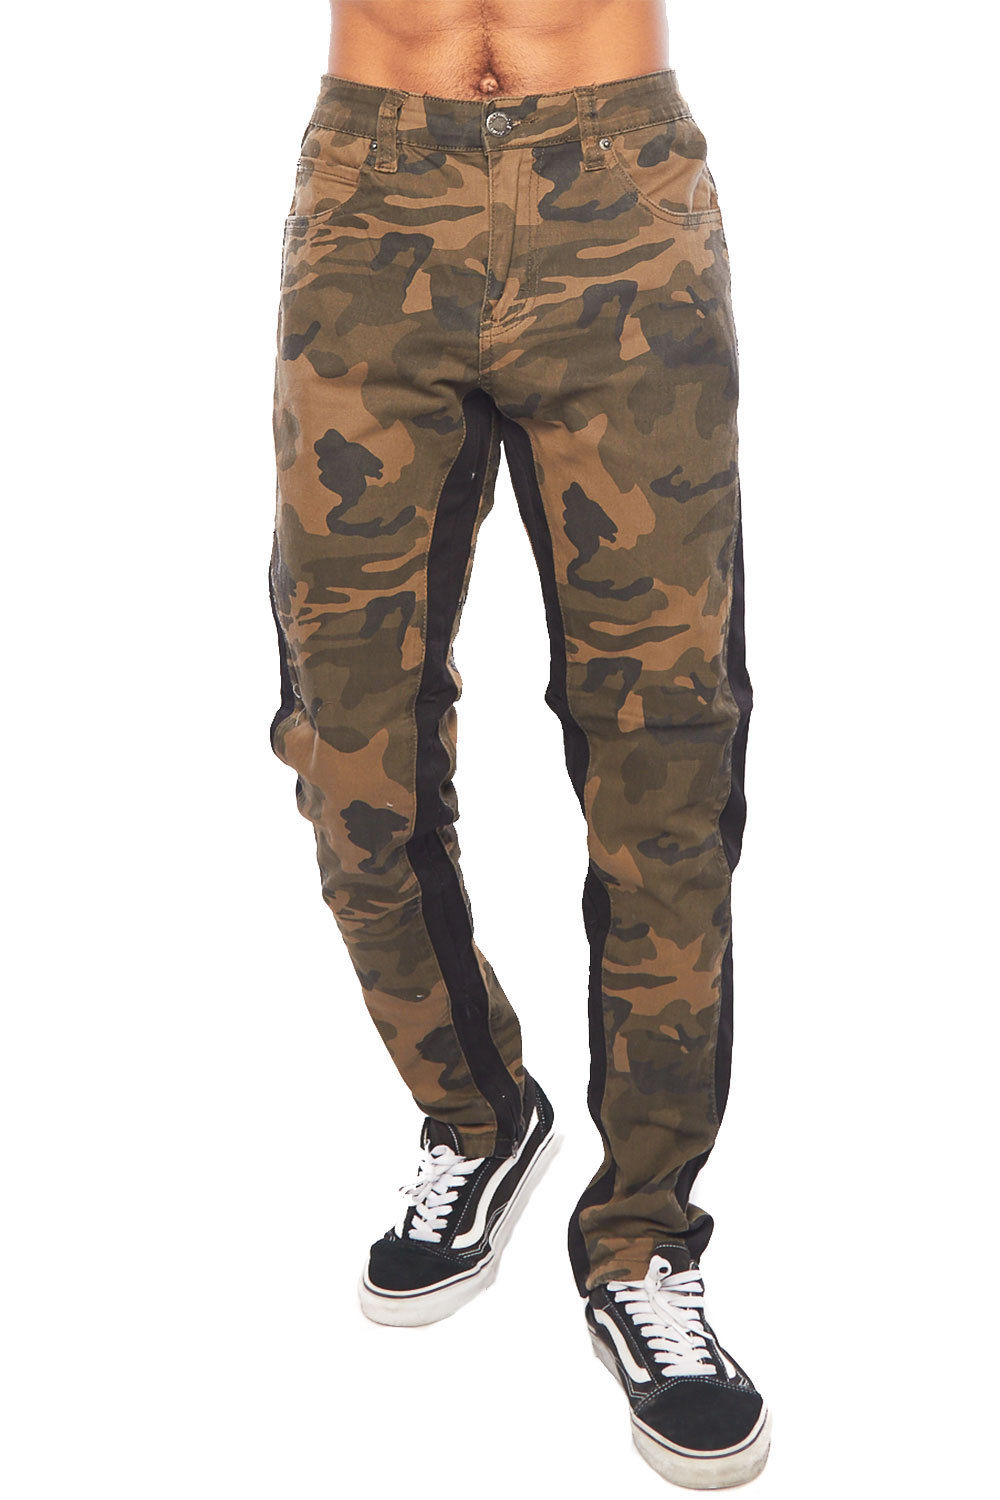 Mens Hipster Side Stripe Camouflage Slim Fit Pants DL1167-30-Camo/White